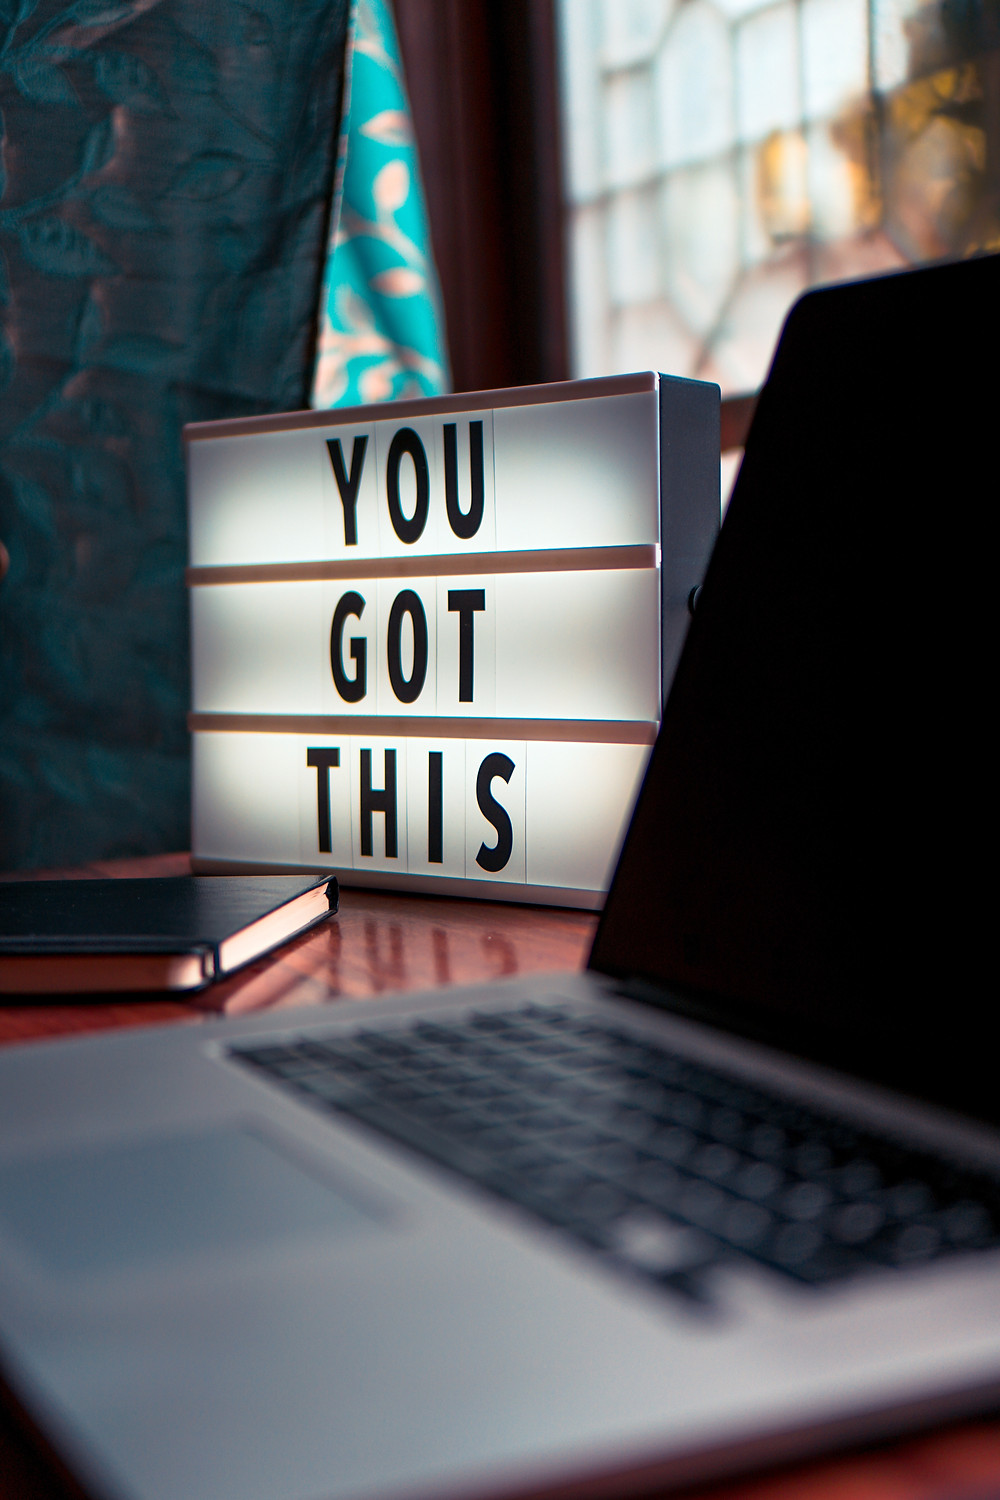 You Got This | Learn to Blog | Photo by Prateek Katyal from Pexels